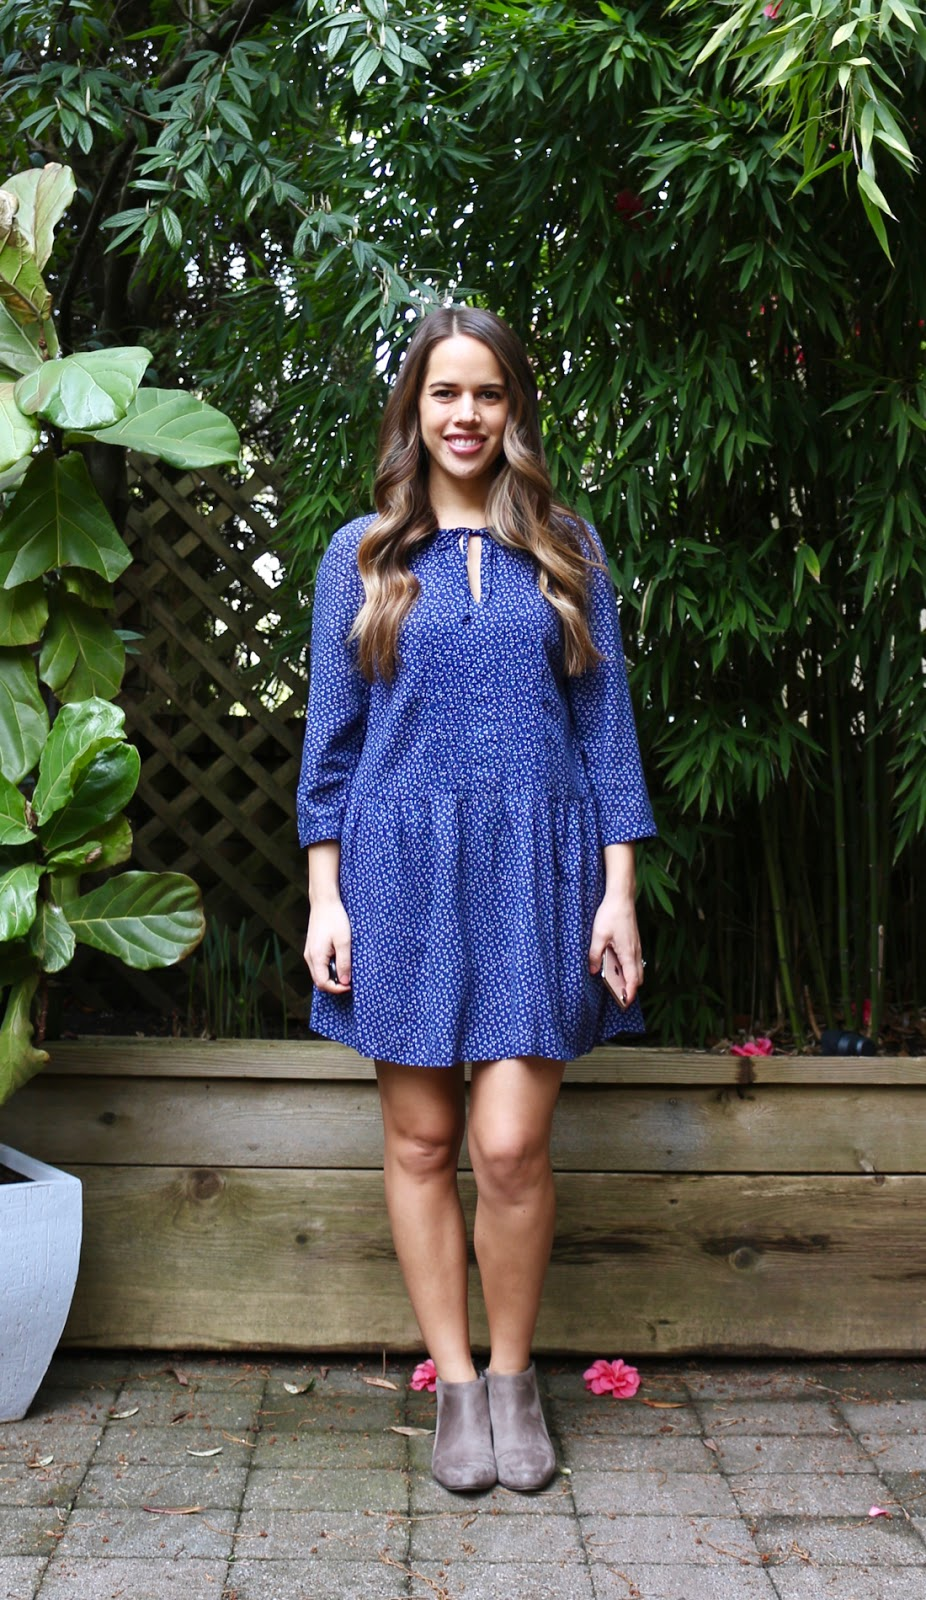 Jules in Flats - Tie-Neck Swing Dress with Ankle Boots (Business Casual Spring Workwear on a Budget)